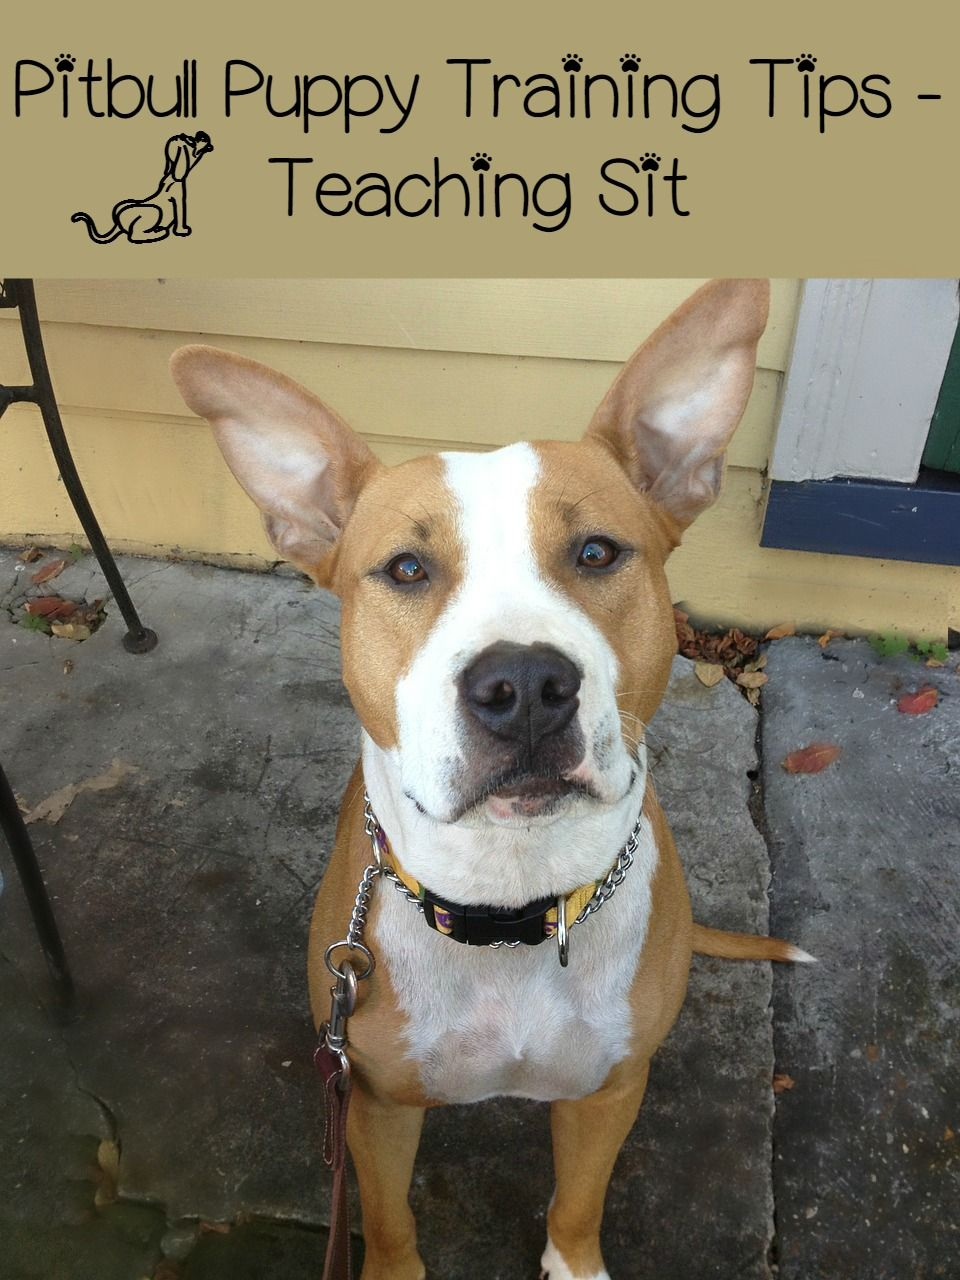 Pitbull Puppy Training Tips – Teaching Sit